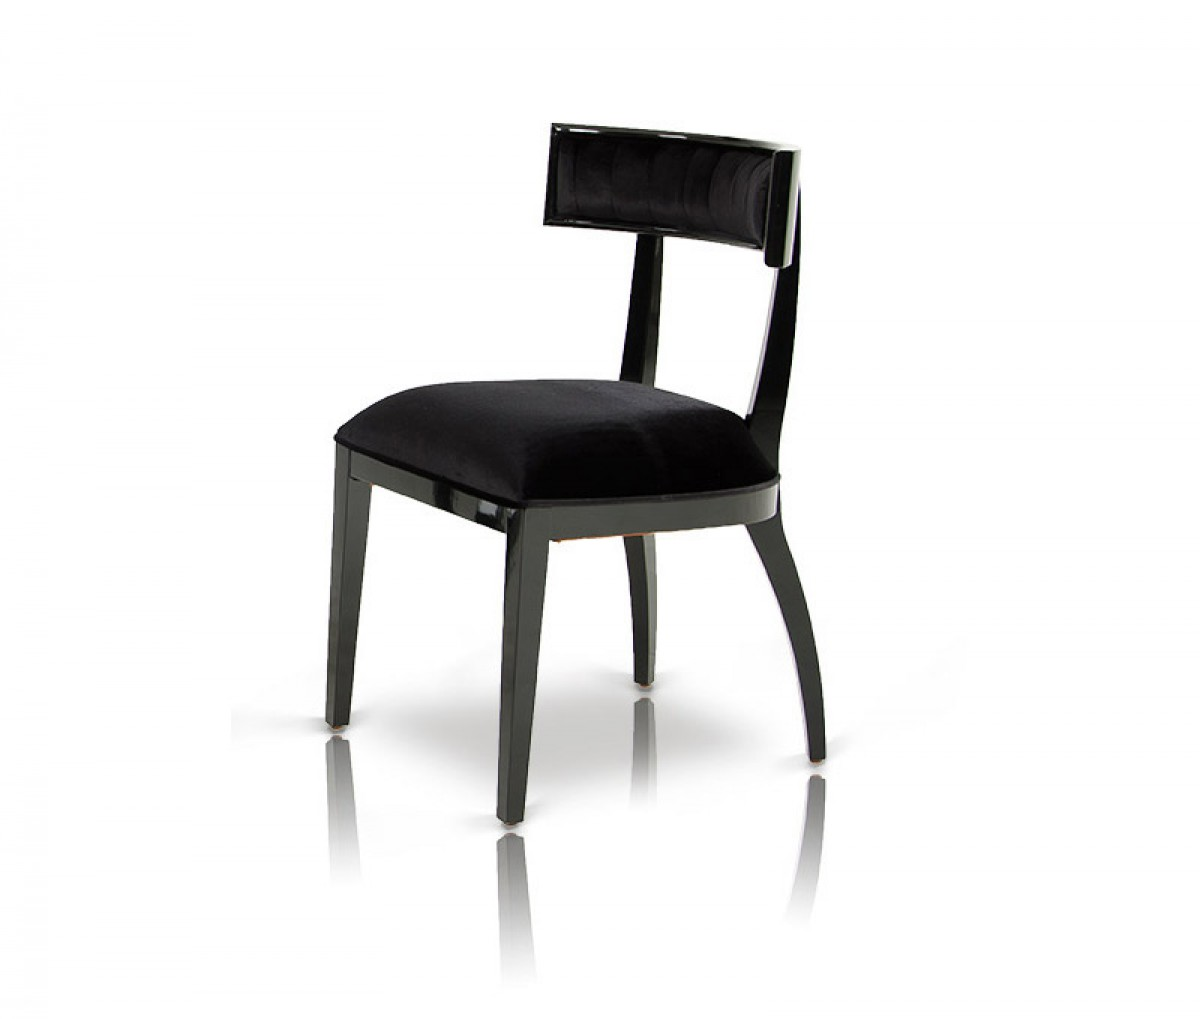 Black Dining Room Chair: Modern Black Dining Chair (Set Of 2